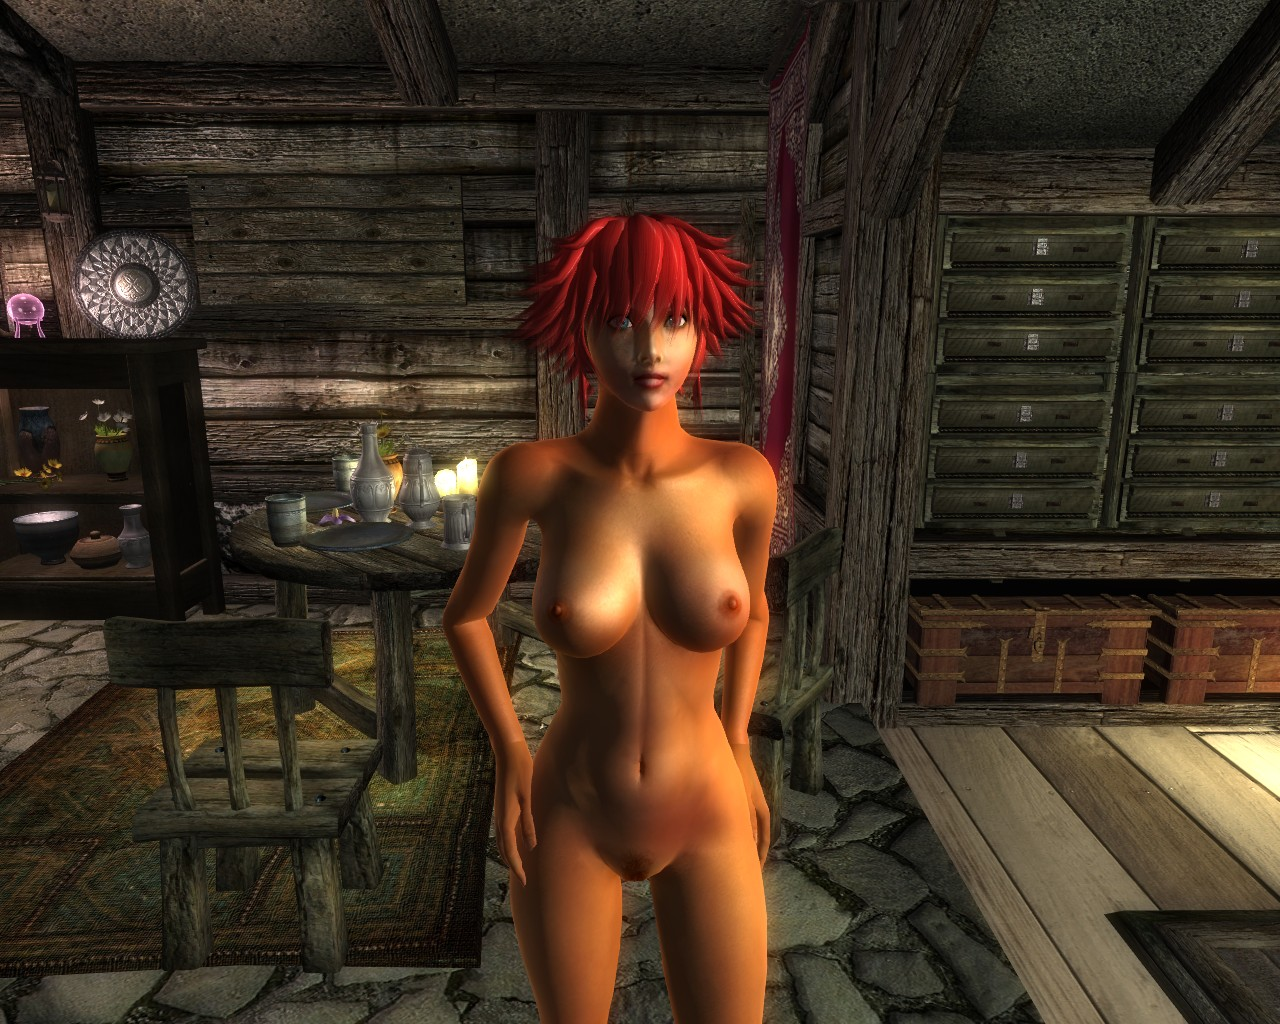 Nude mode oblivion exploited uncensored females